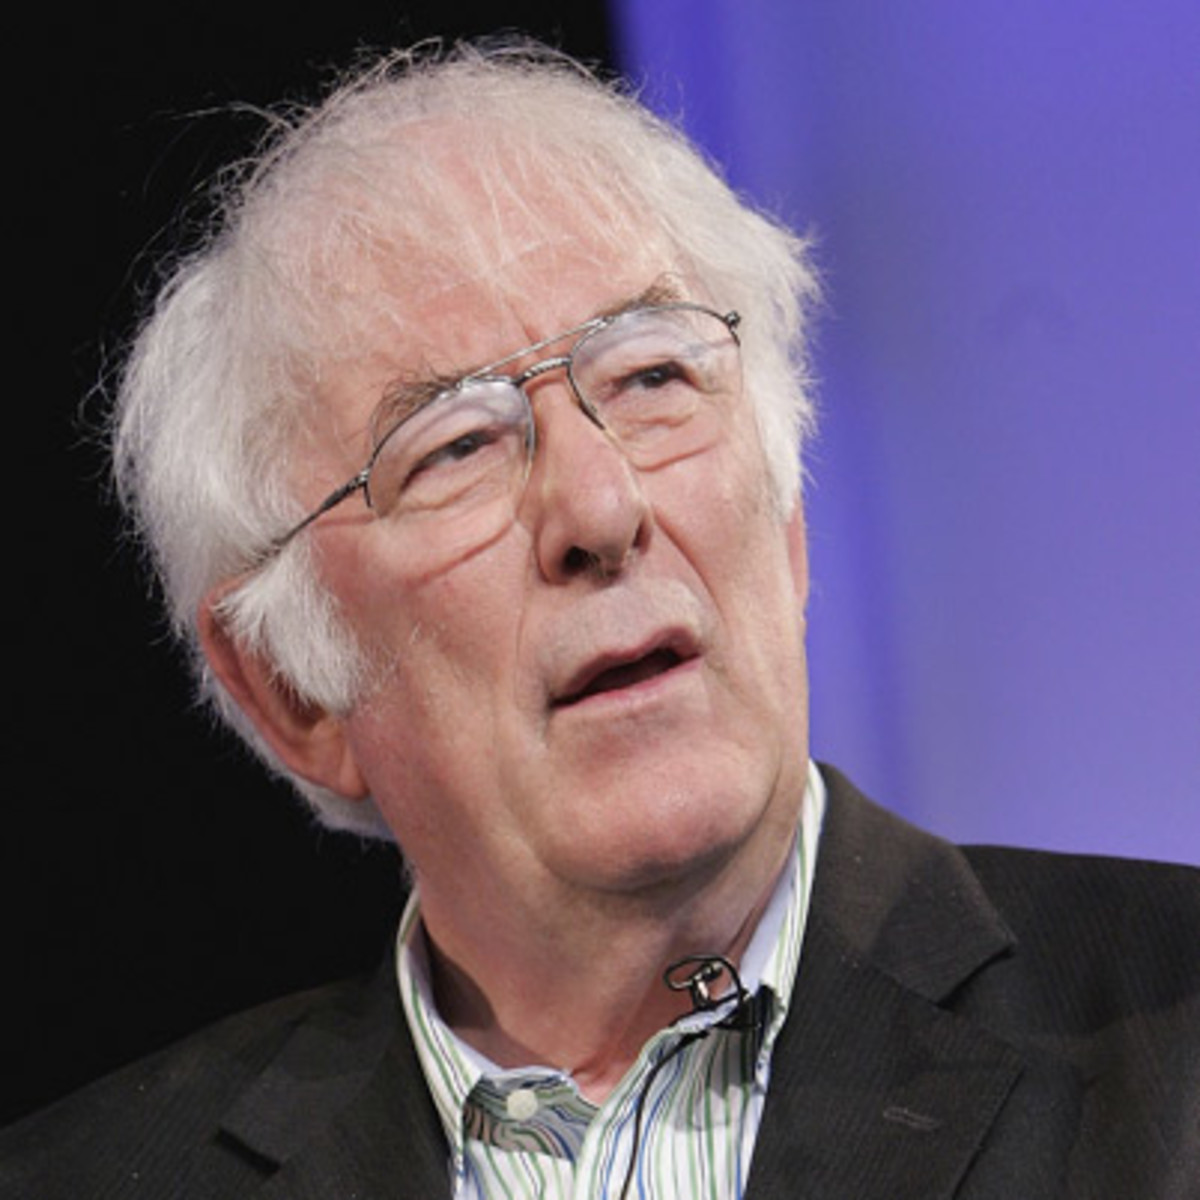 Seamus Heaney Digging Poems Quotes Biography